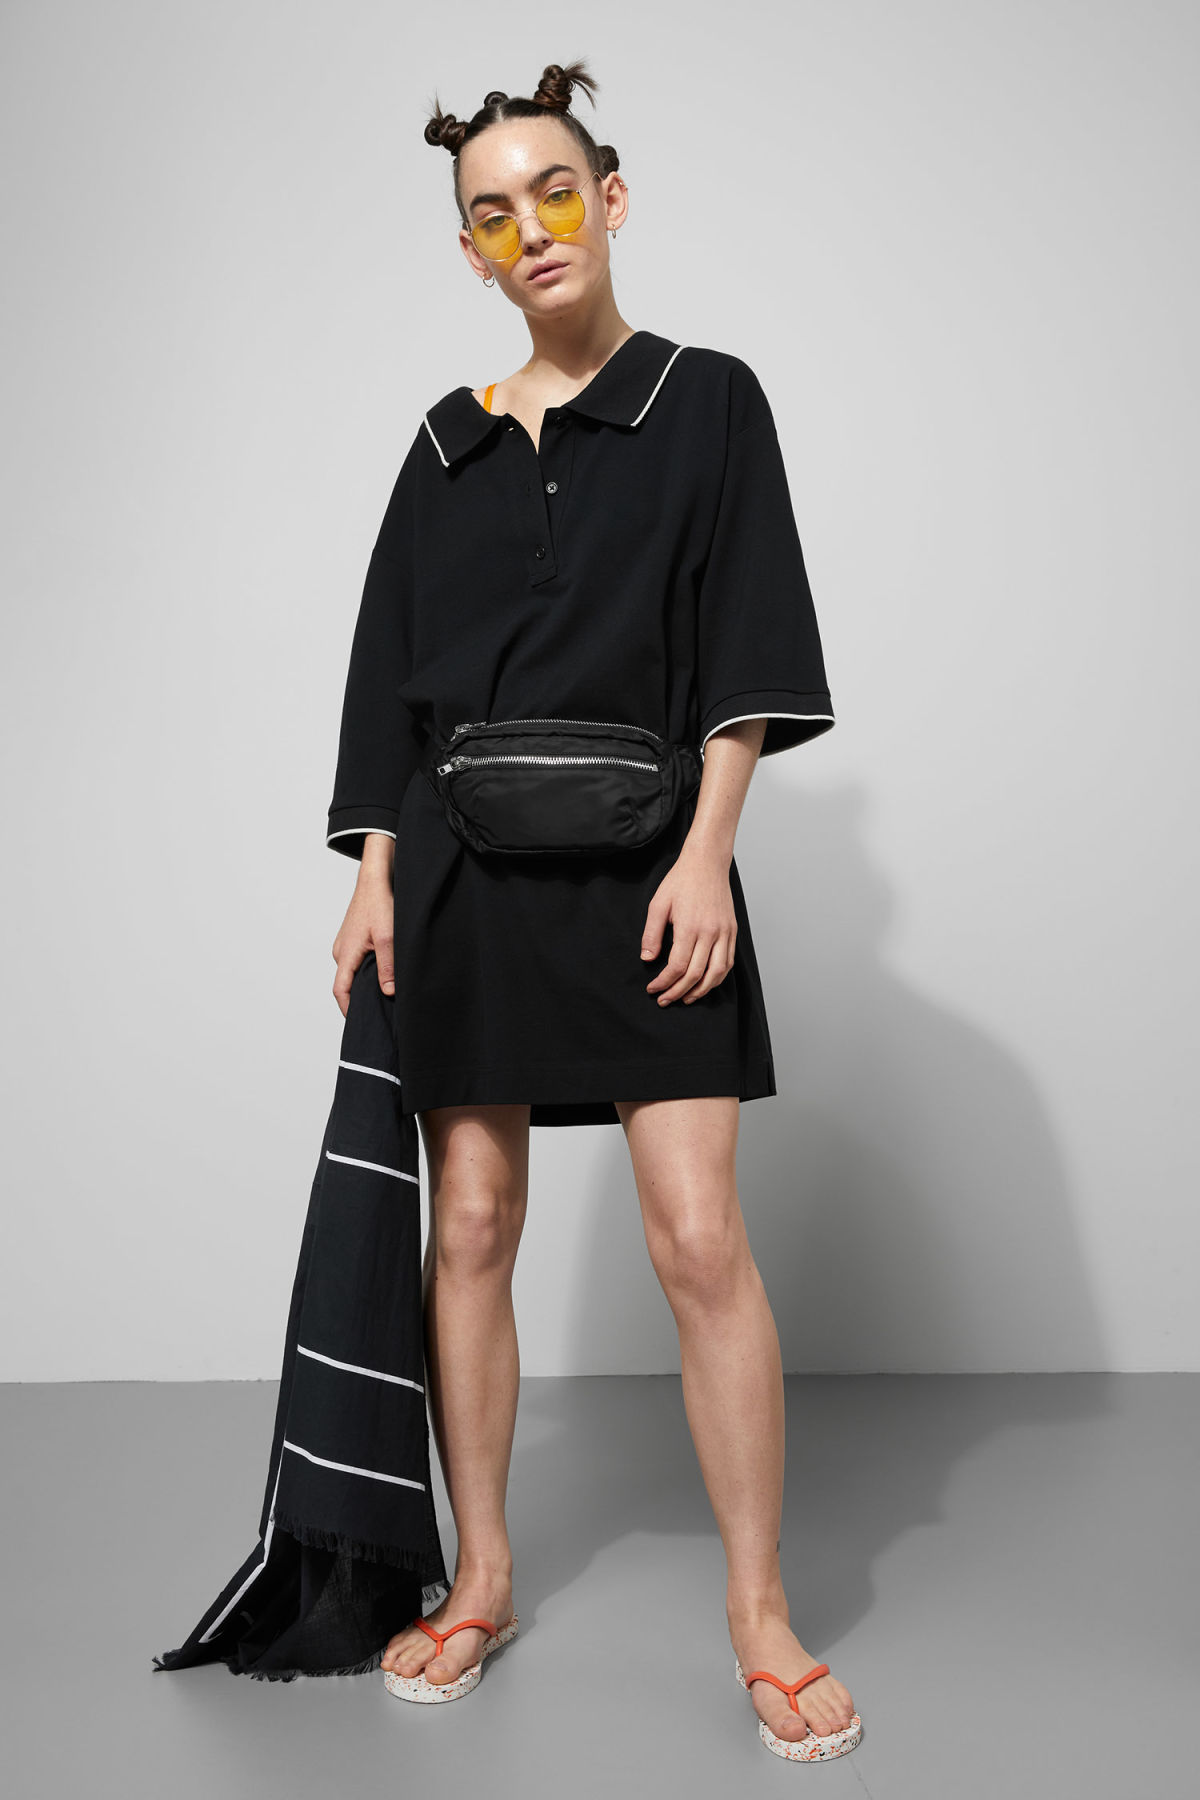 Weekday Dice Dress - Black Sale Shop Offer Cheap Sneakernews Free Shipping Classic Free Shipping Browse TdF3aSx7r